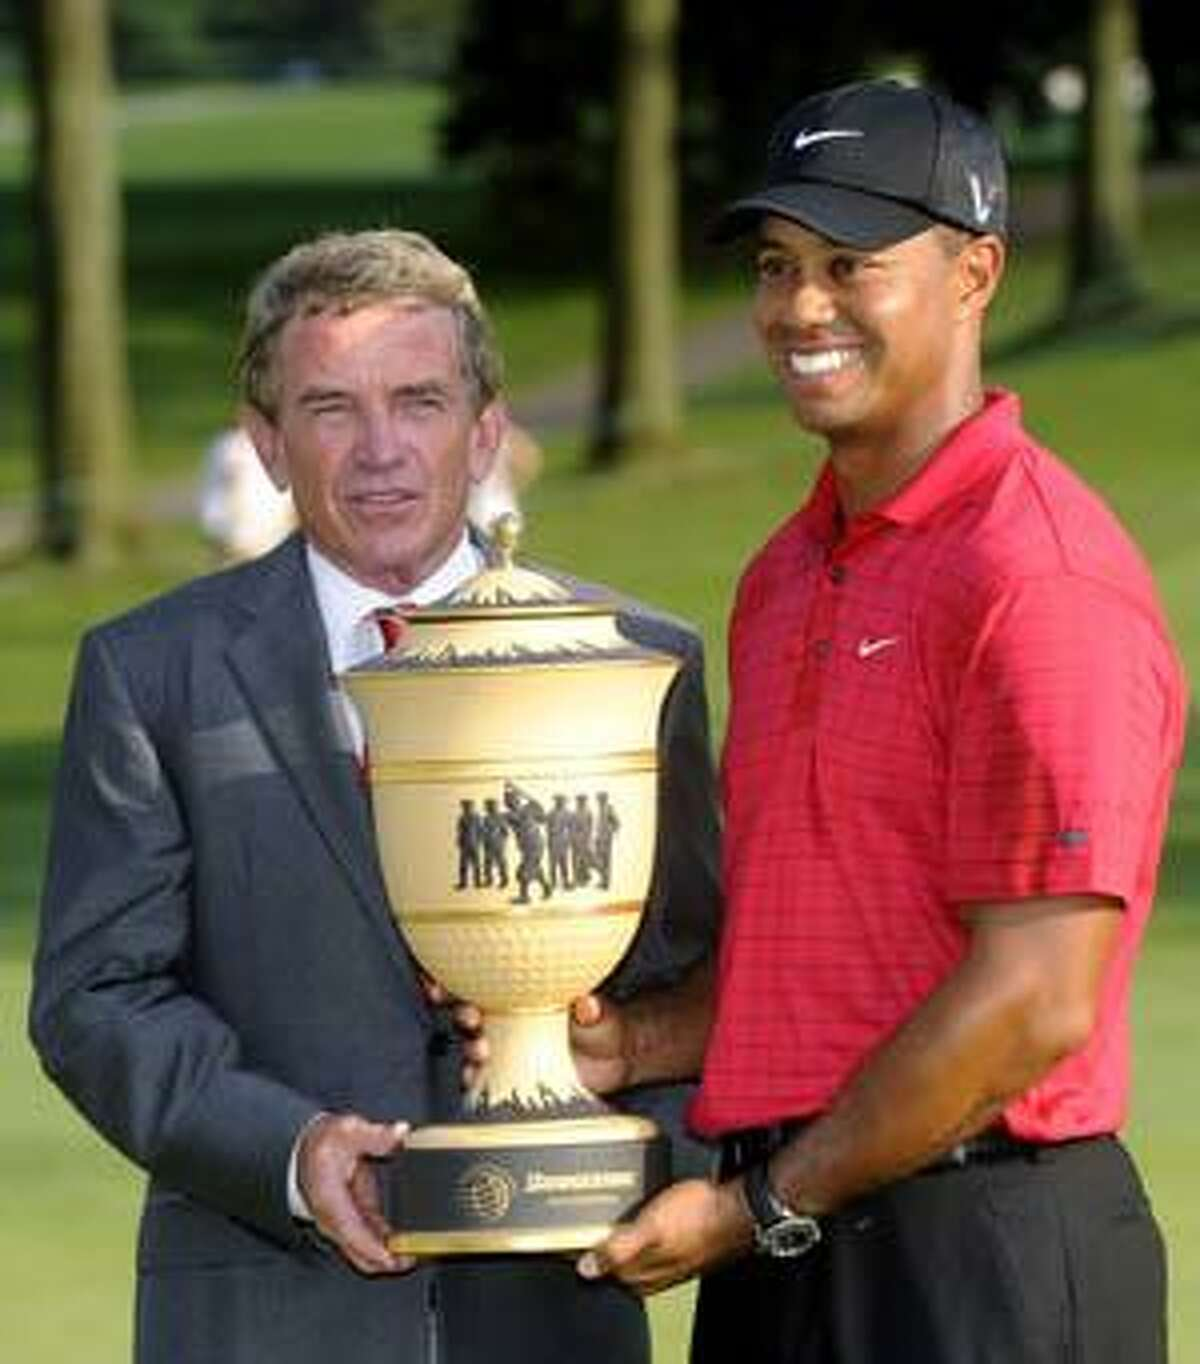 AP Tiger Woods, right, holds the Bridgestone Invitational trophy with PGA Tour commissioner Tim Finchem, after Woods won the golf tournament in Akron, Ohio, on Aug. 9. Finchem says Tiger Woods' indefinite leave doesn't spell